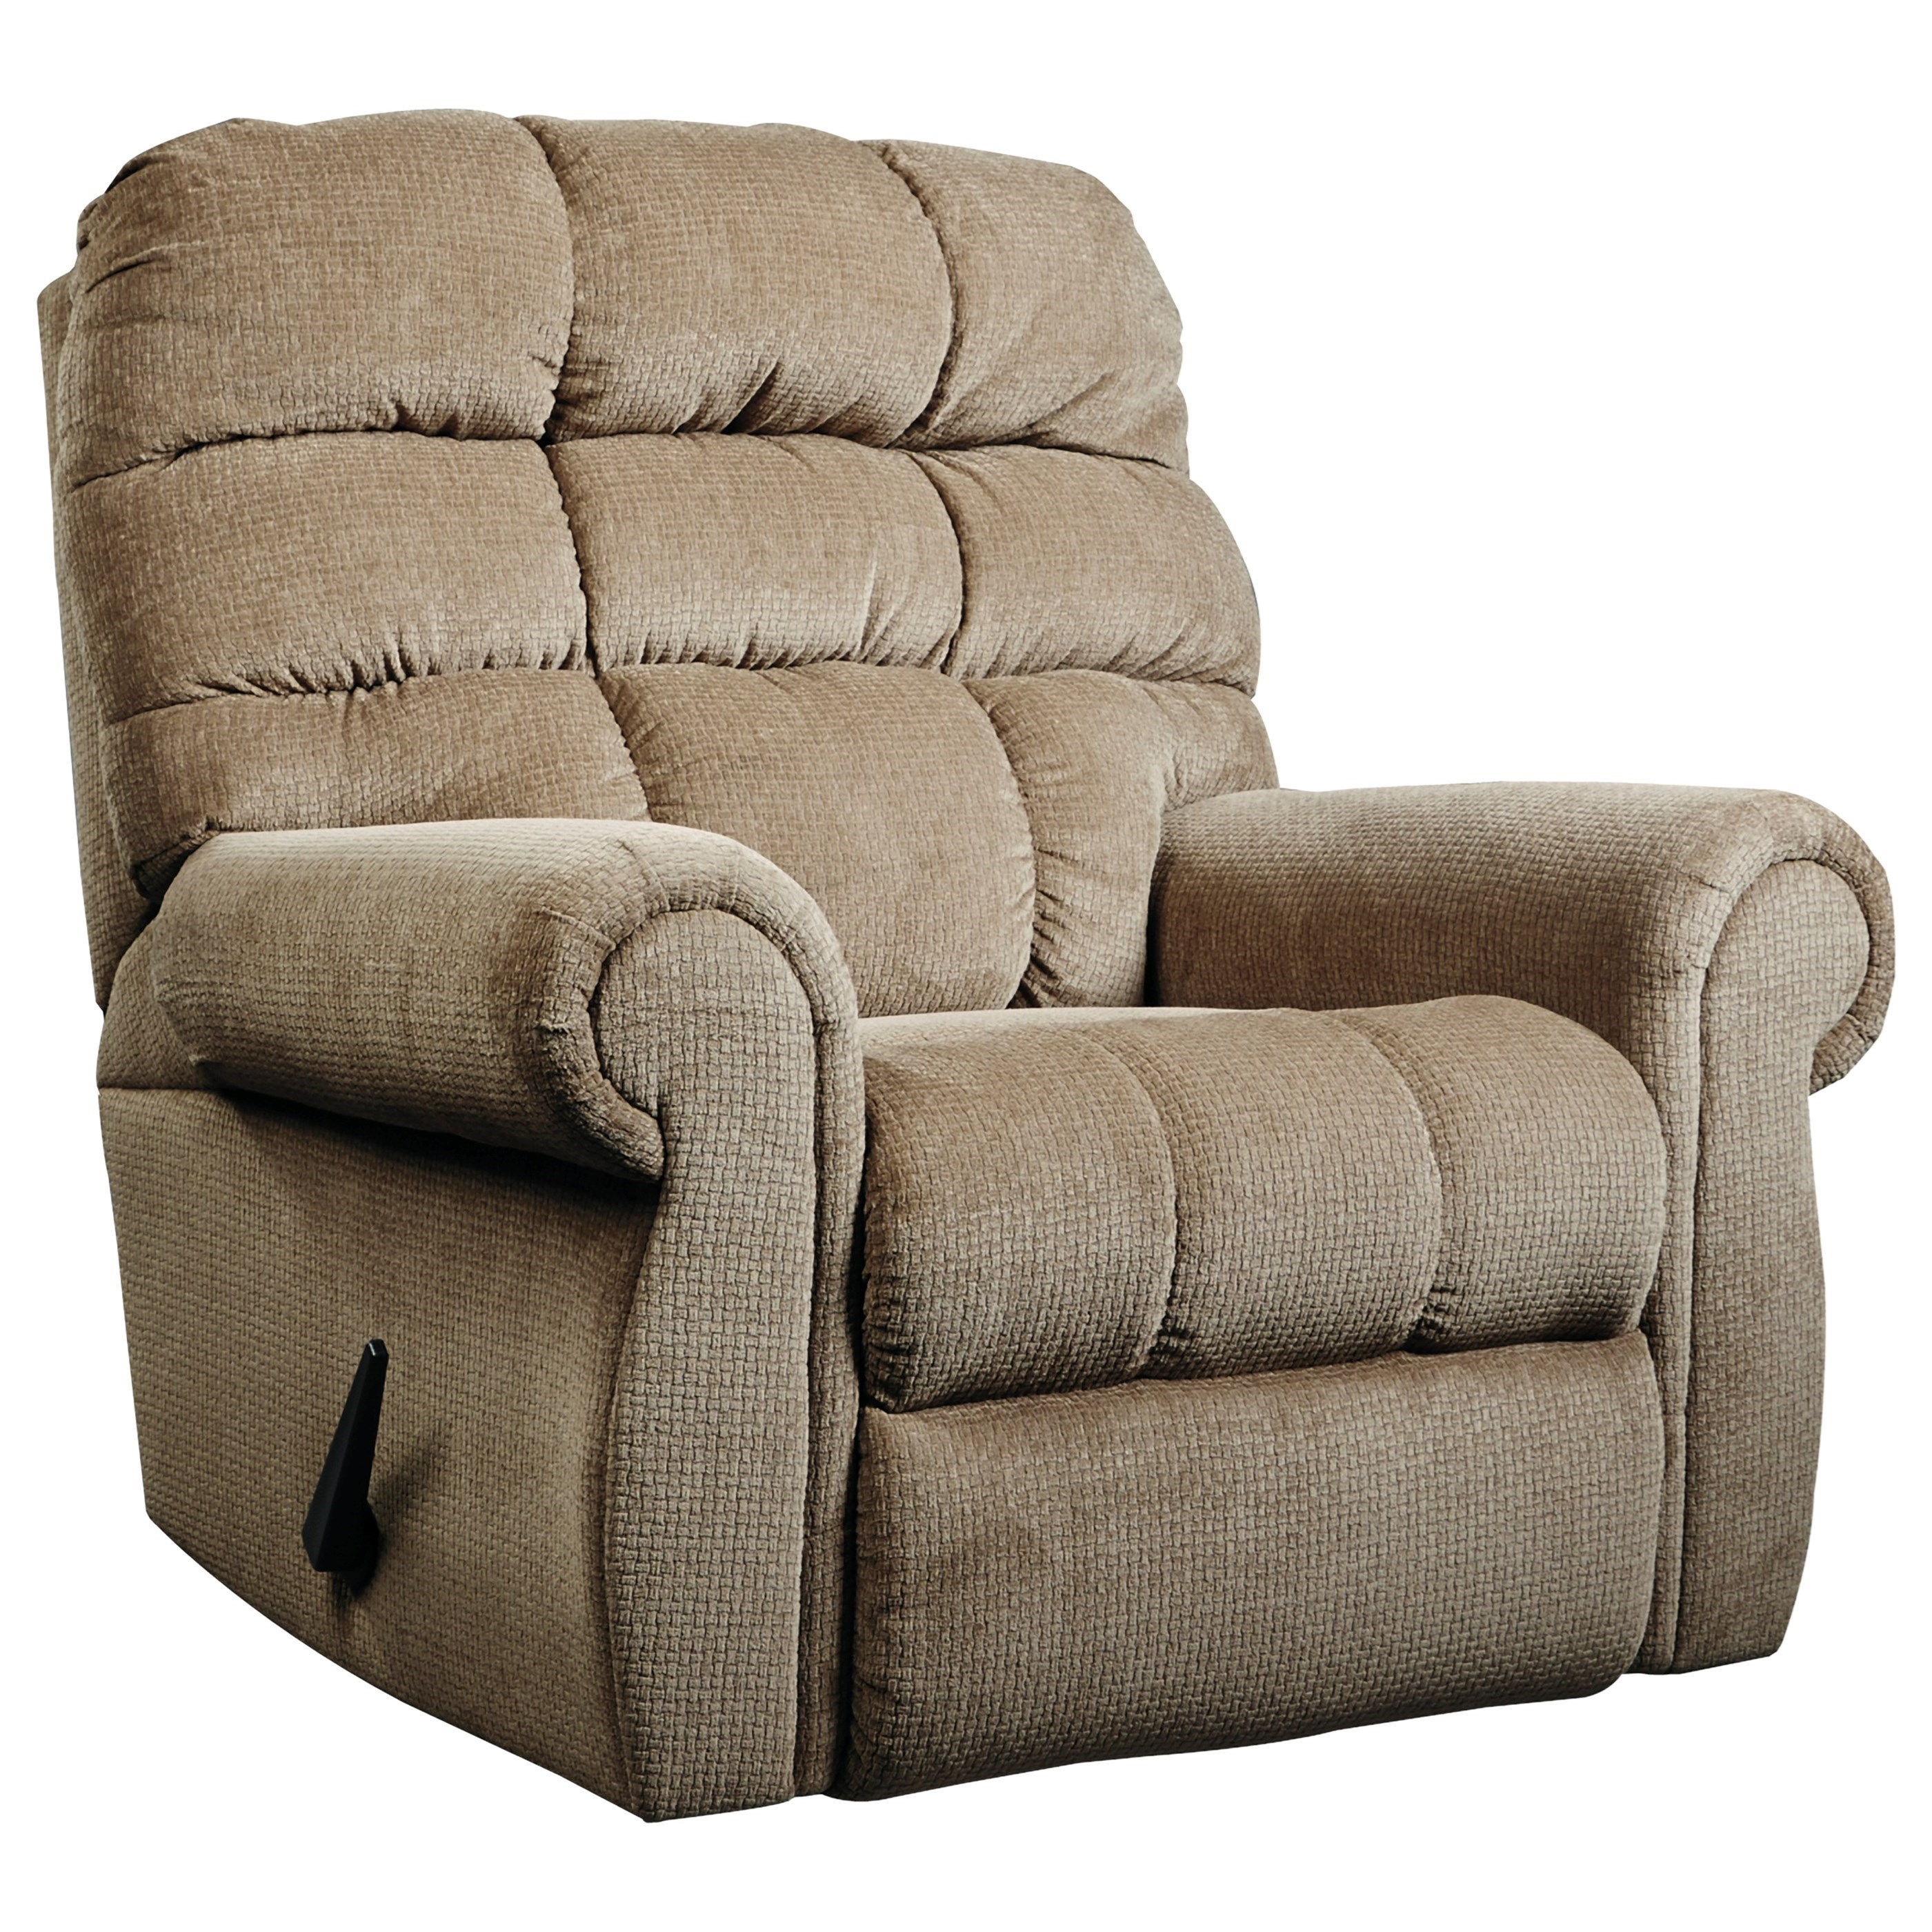 Signature Design by Ashley Edger Rocker Recliner - Item Number: 7471125